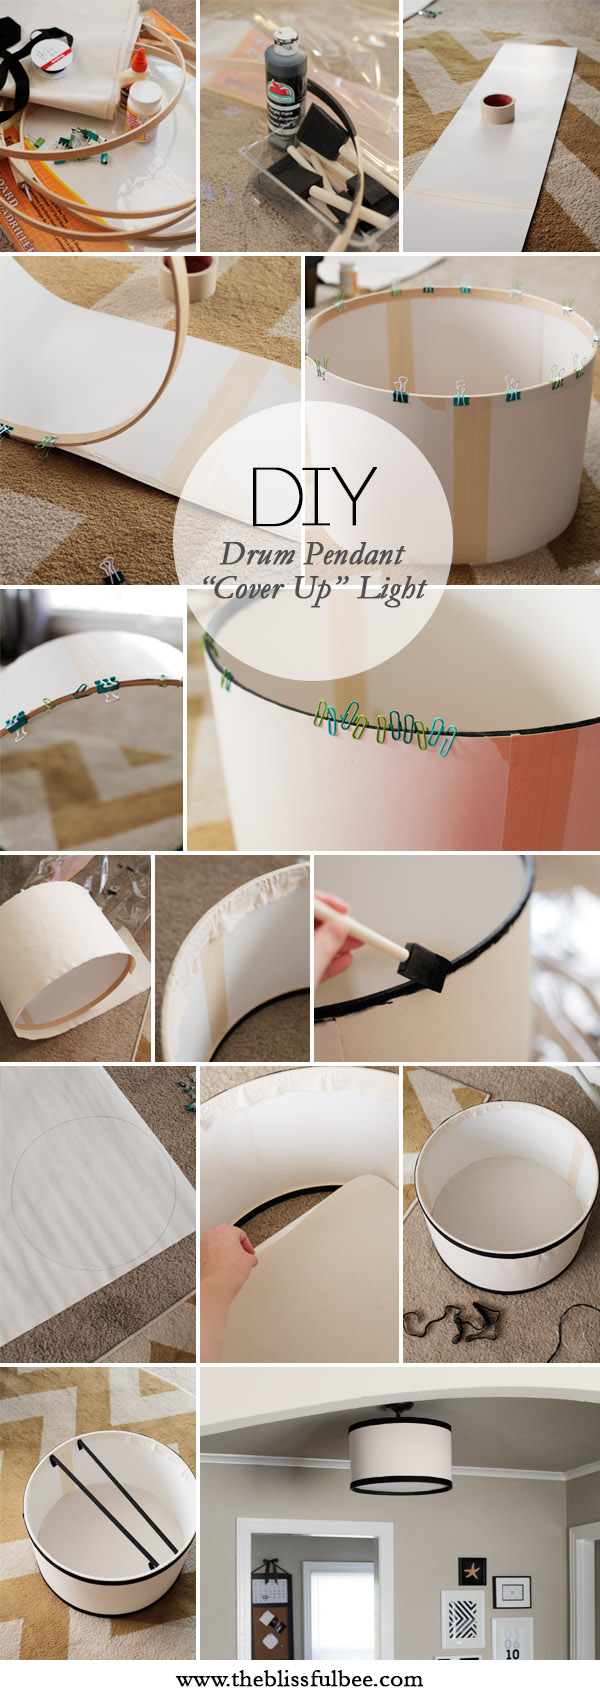 Diy drum pendant cover up light the blissful bee drumpendanttutorial aloadofball Gallery